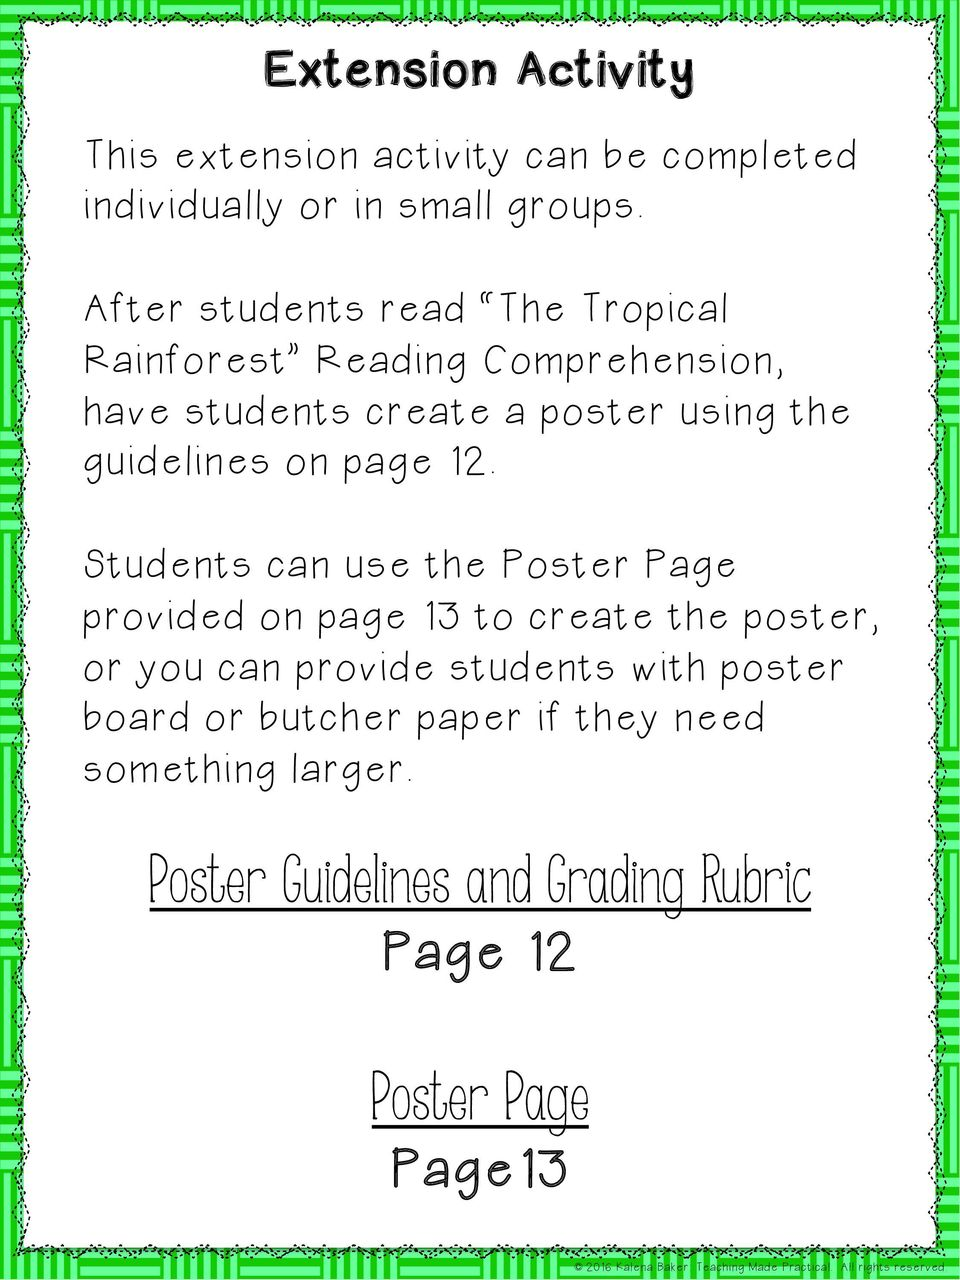 guidelines on page 12.